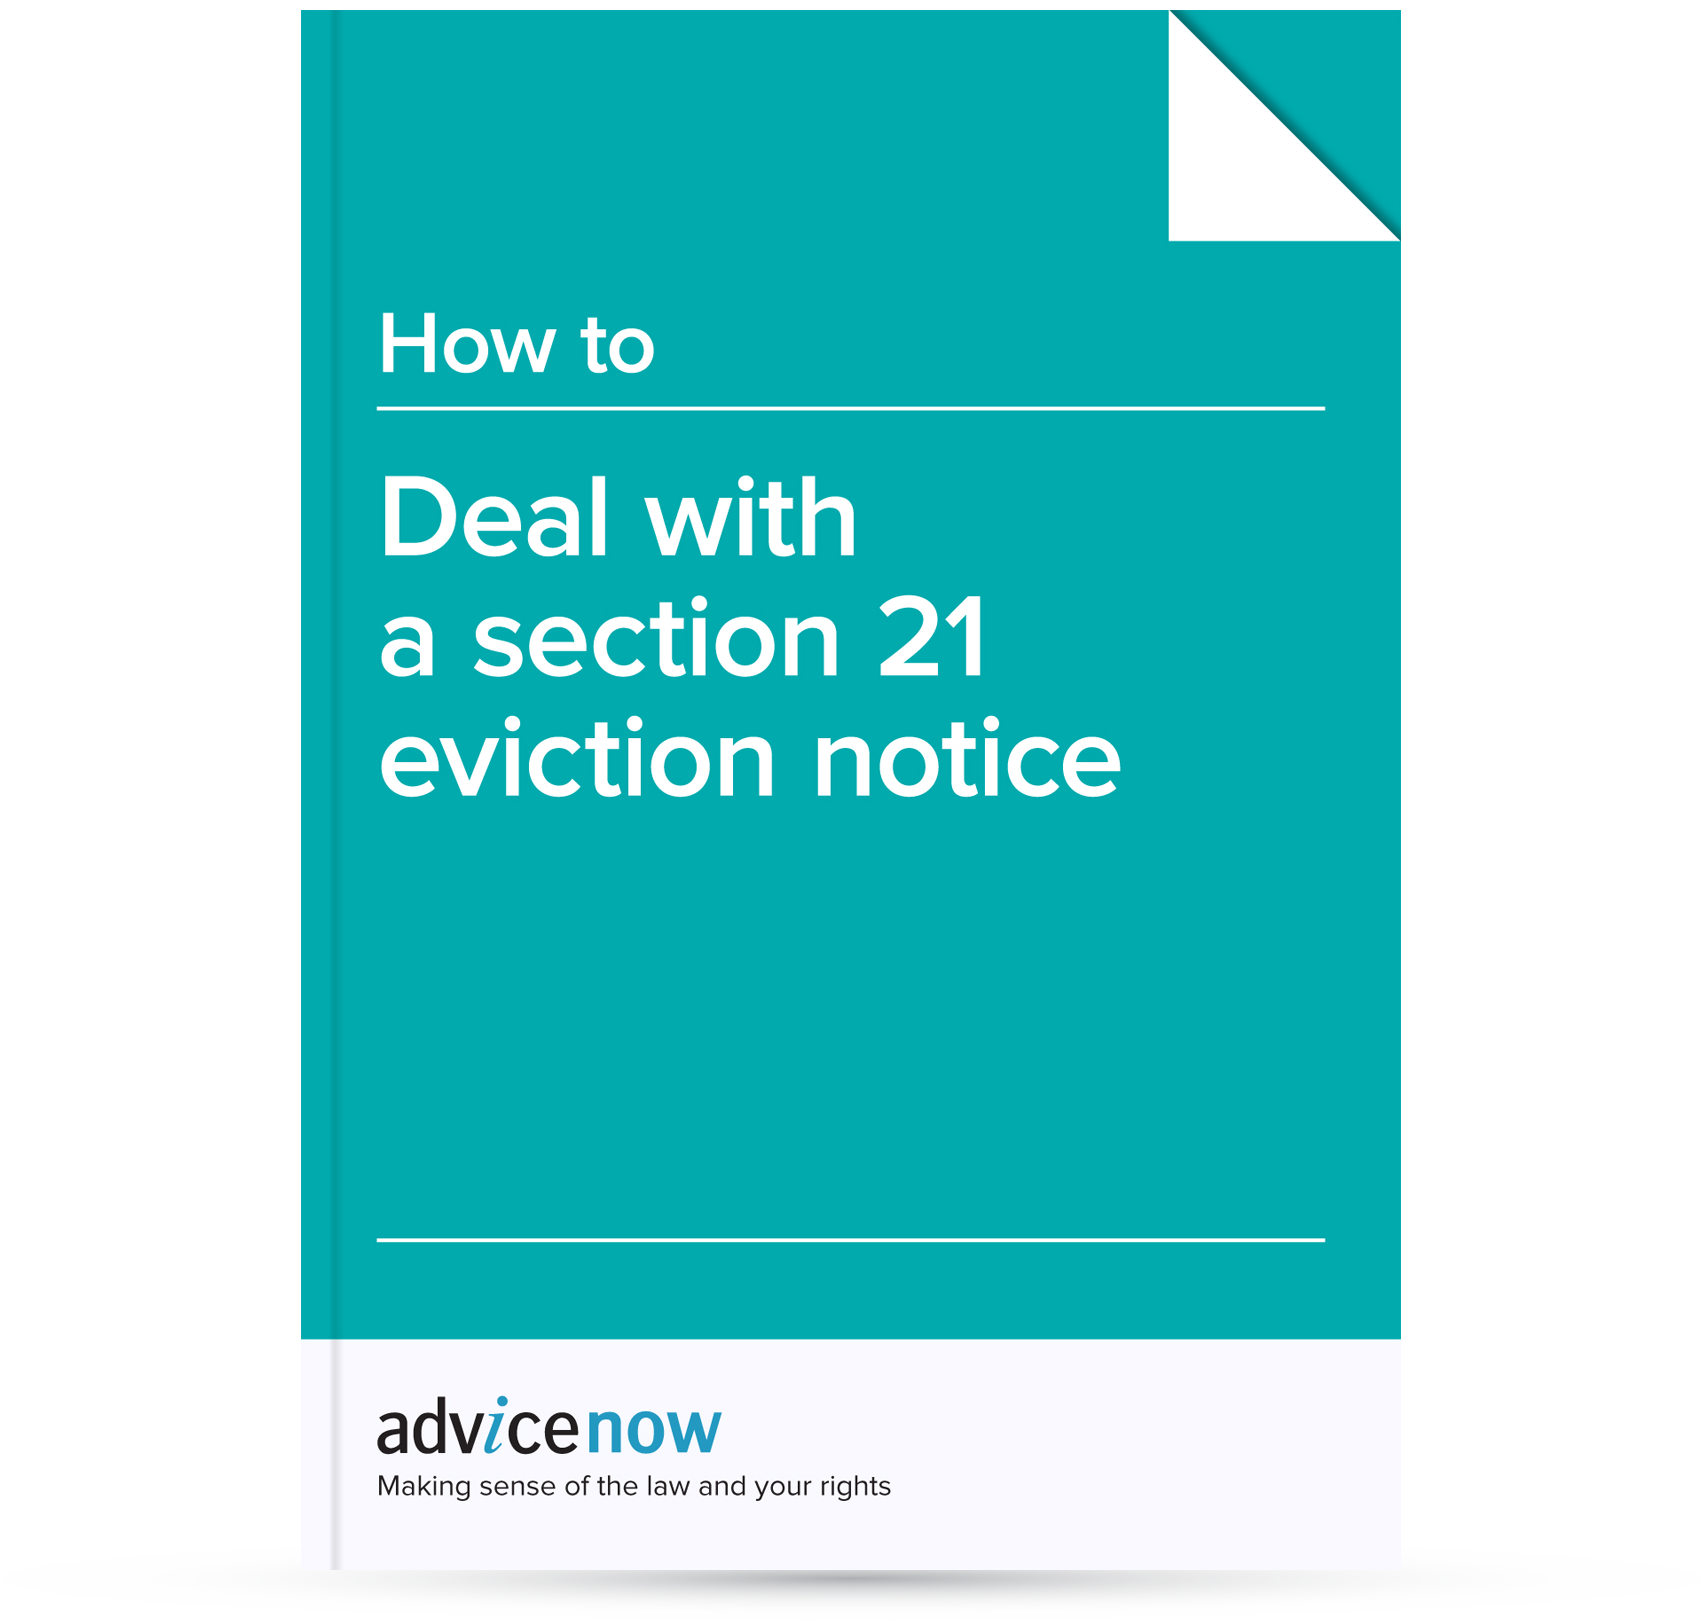 How To Deal With A Section 21 Eviction Notice Advicenow